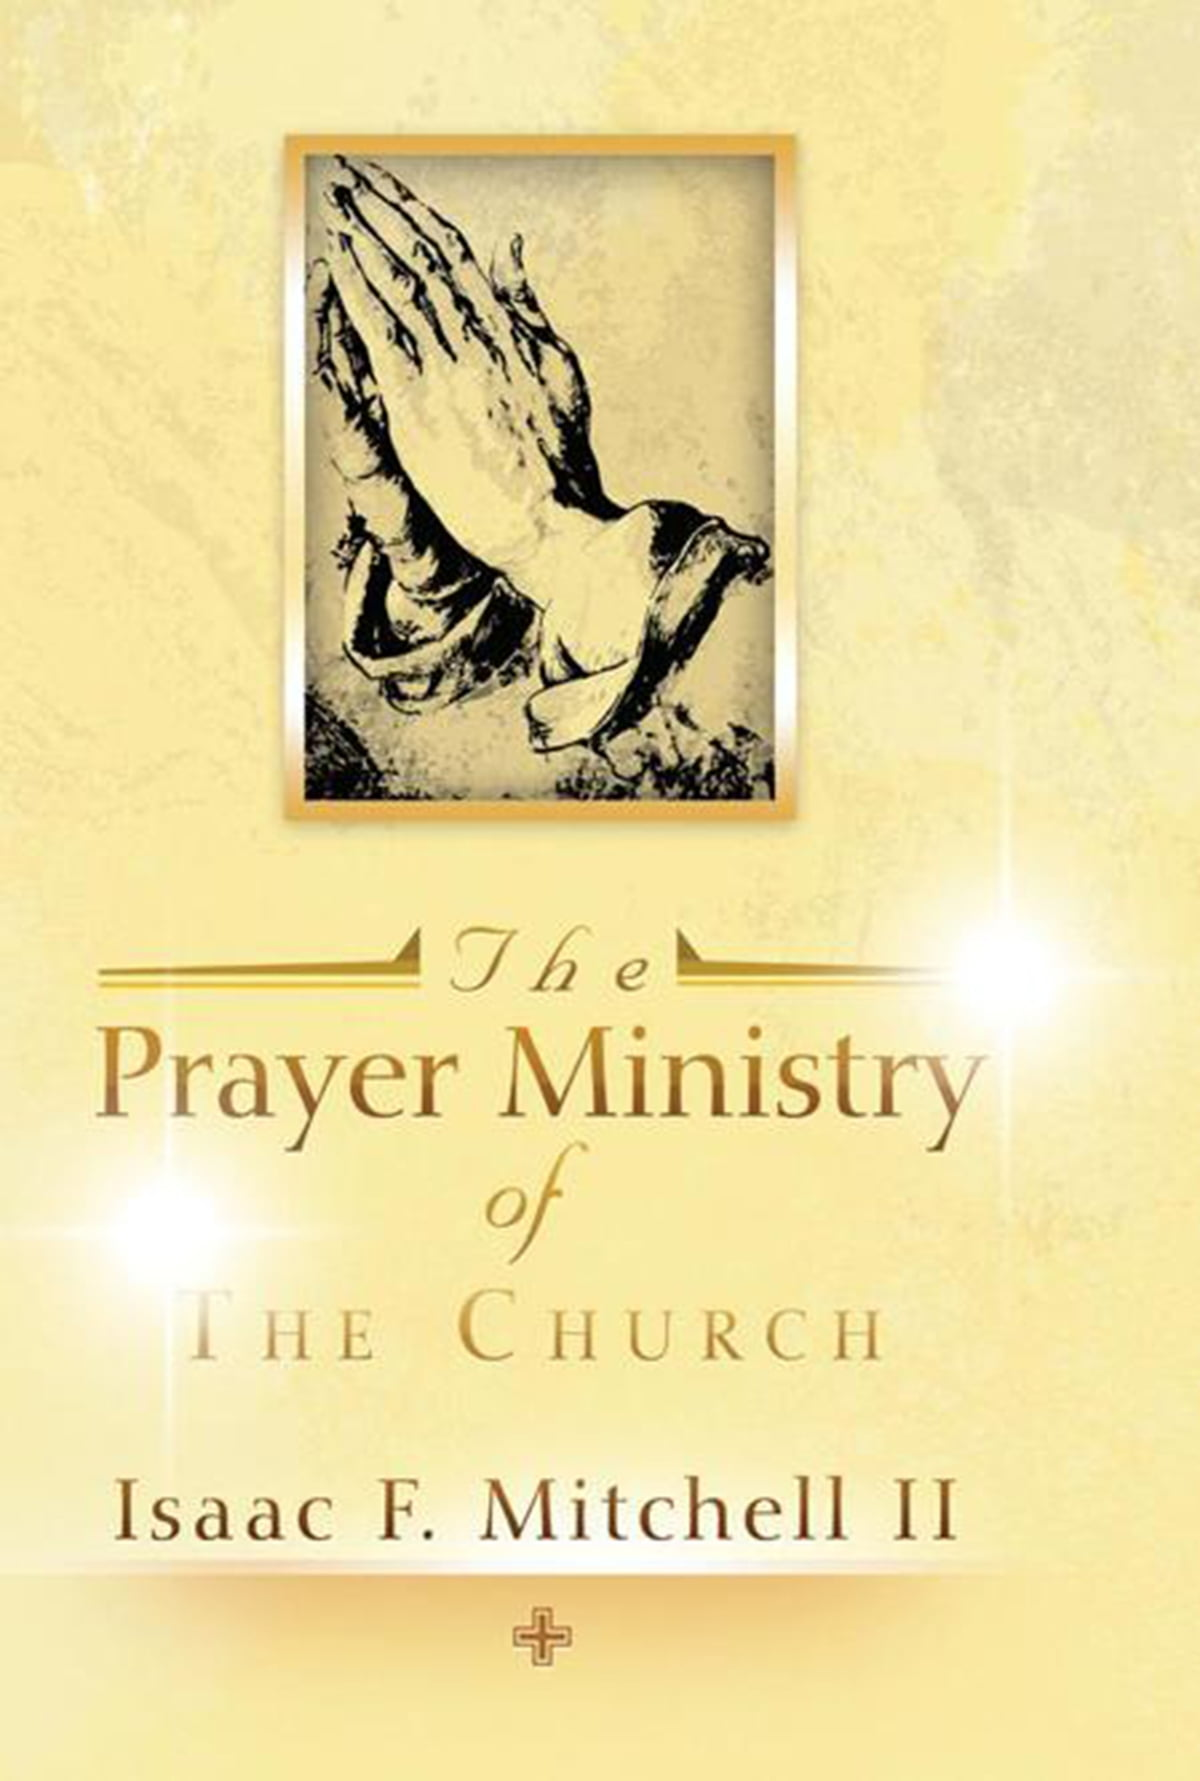 Prayer Ministry The Prayer Ministry Of The Church Ebook By Isaac F Mitchell Ii Rakuten Kobo